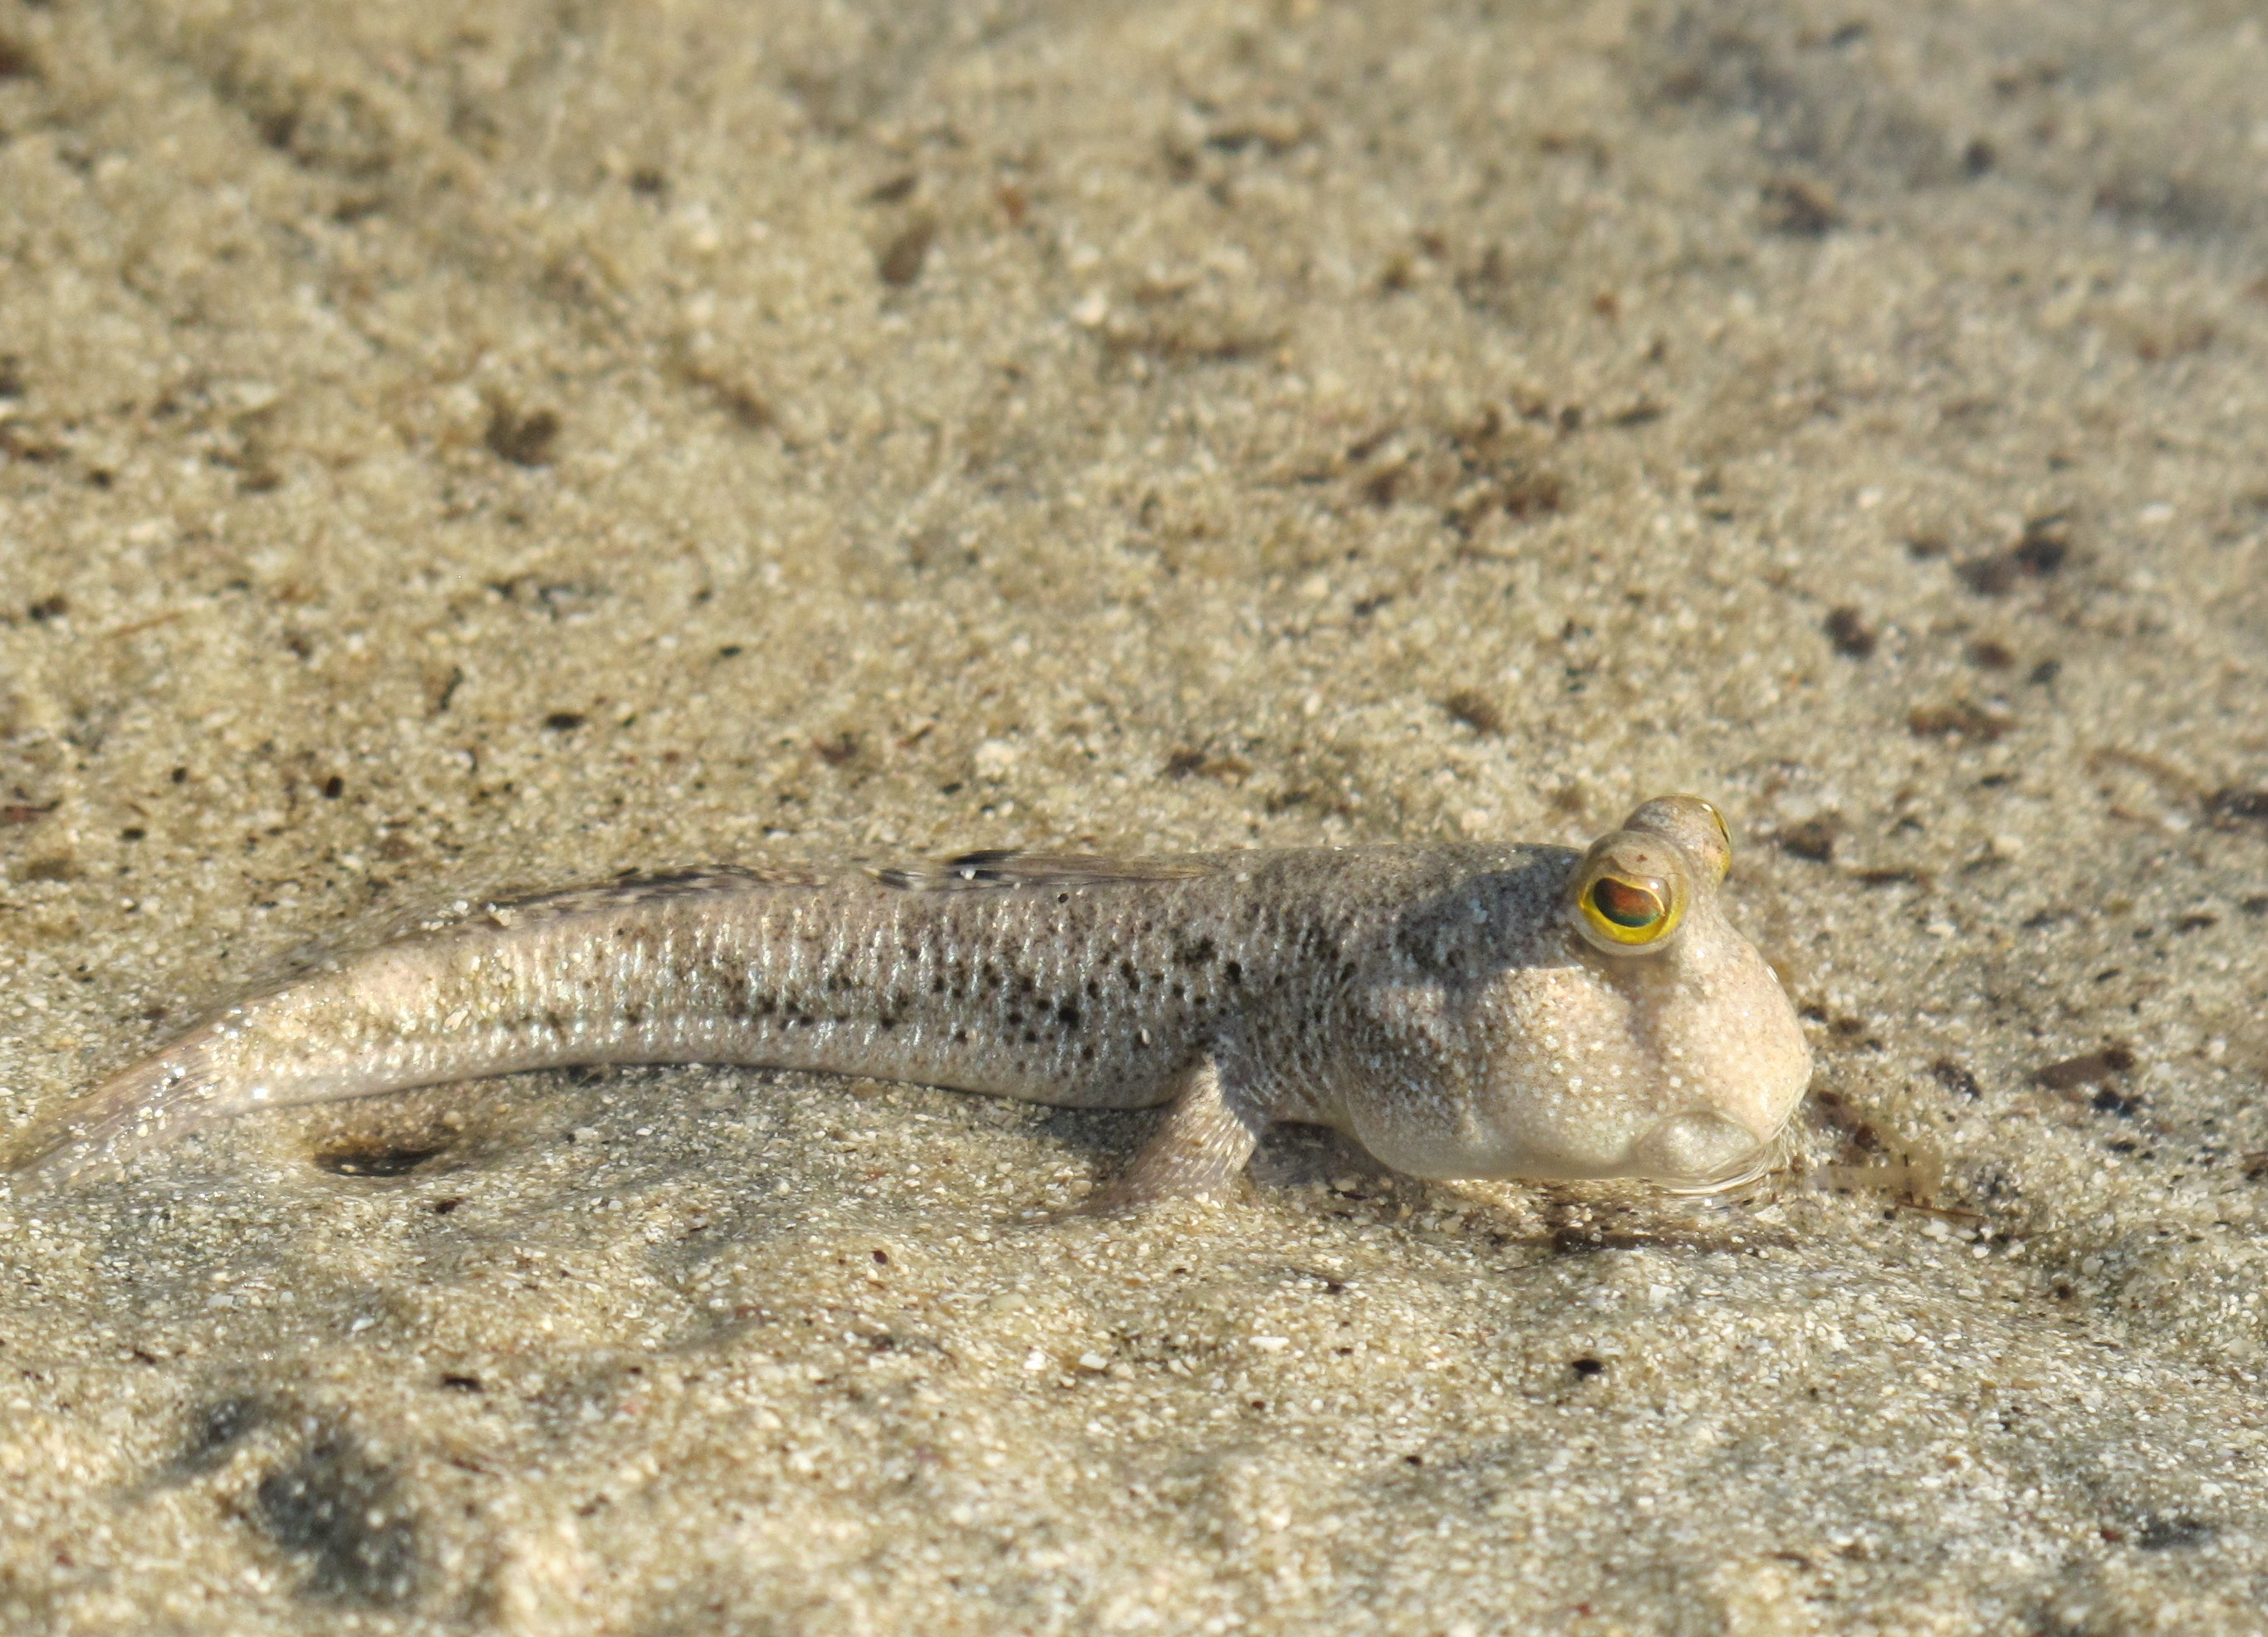 Илистый Прыгун, Mudskipper (Periophthalmus sp.)